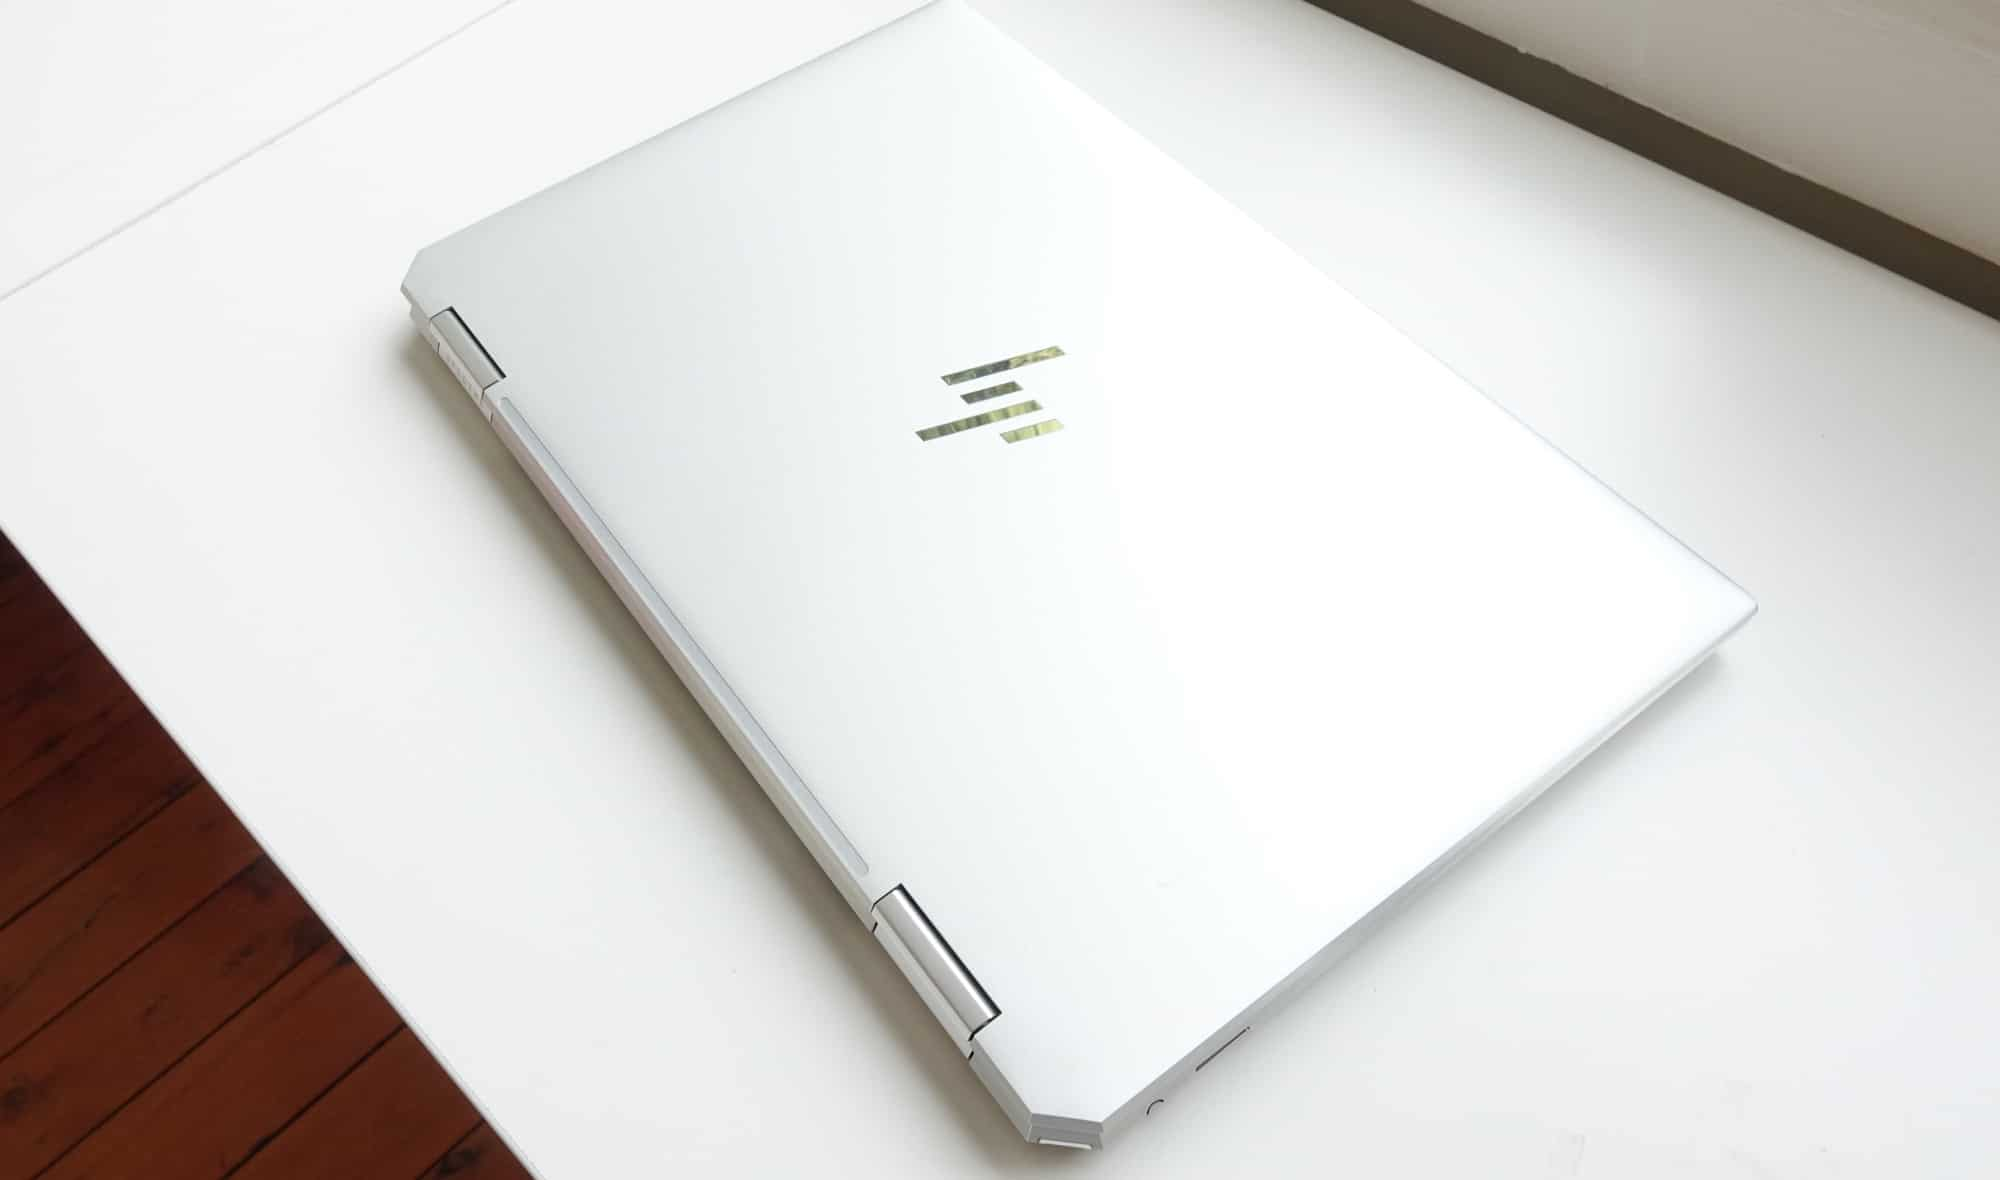 The HP Spectre x360 reviewed